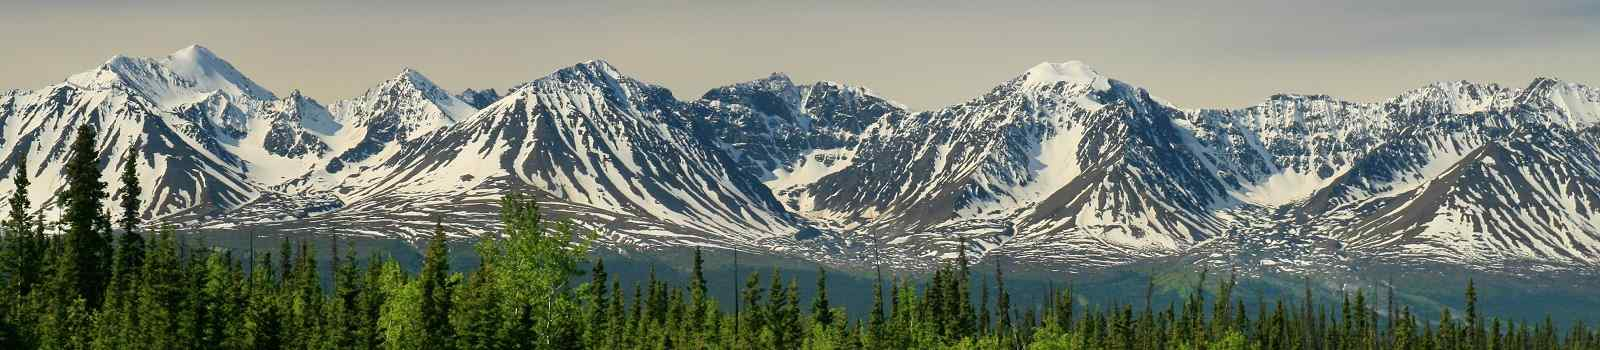 DENALI Awesome panoramic view of Yukon mountains as seen from the Alaska Highway shutterstock 430425310